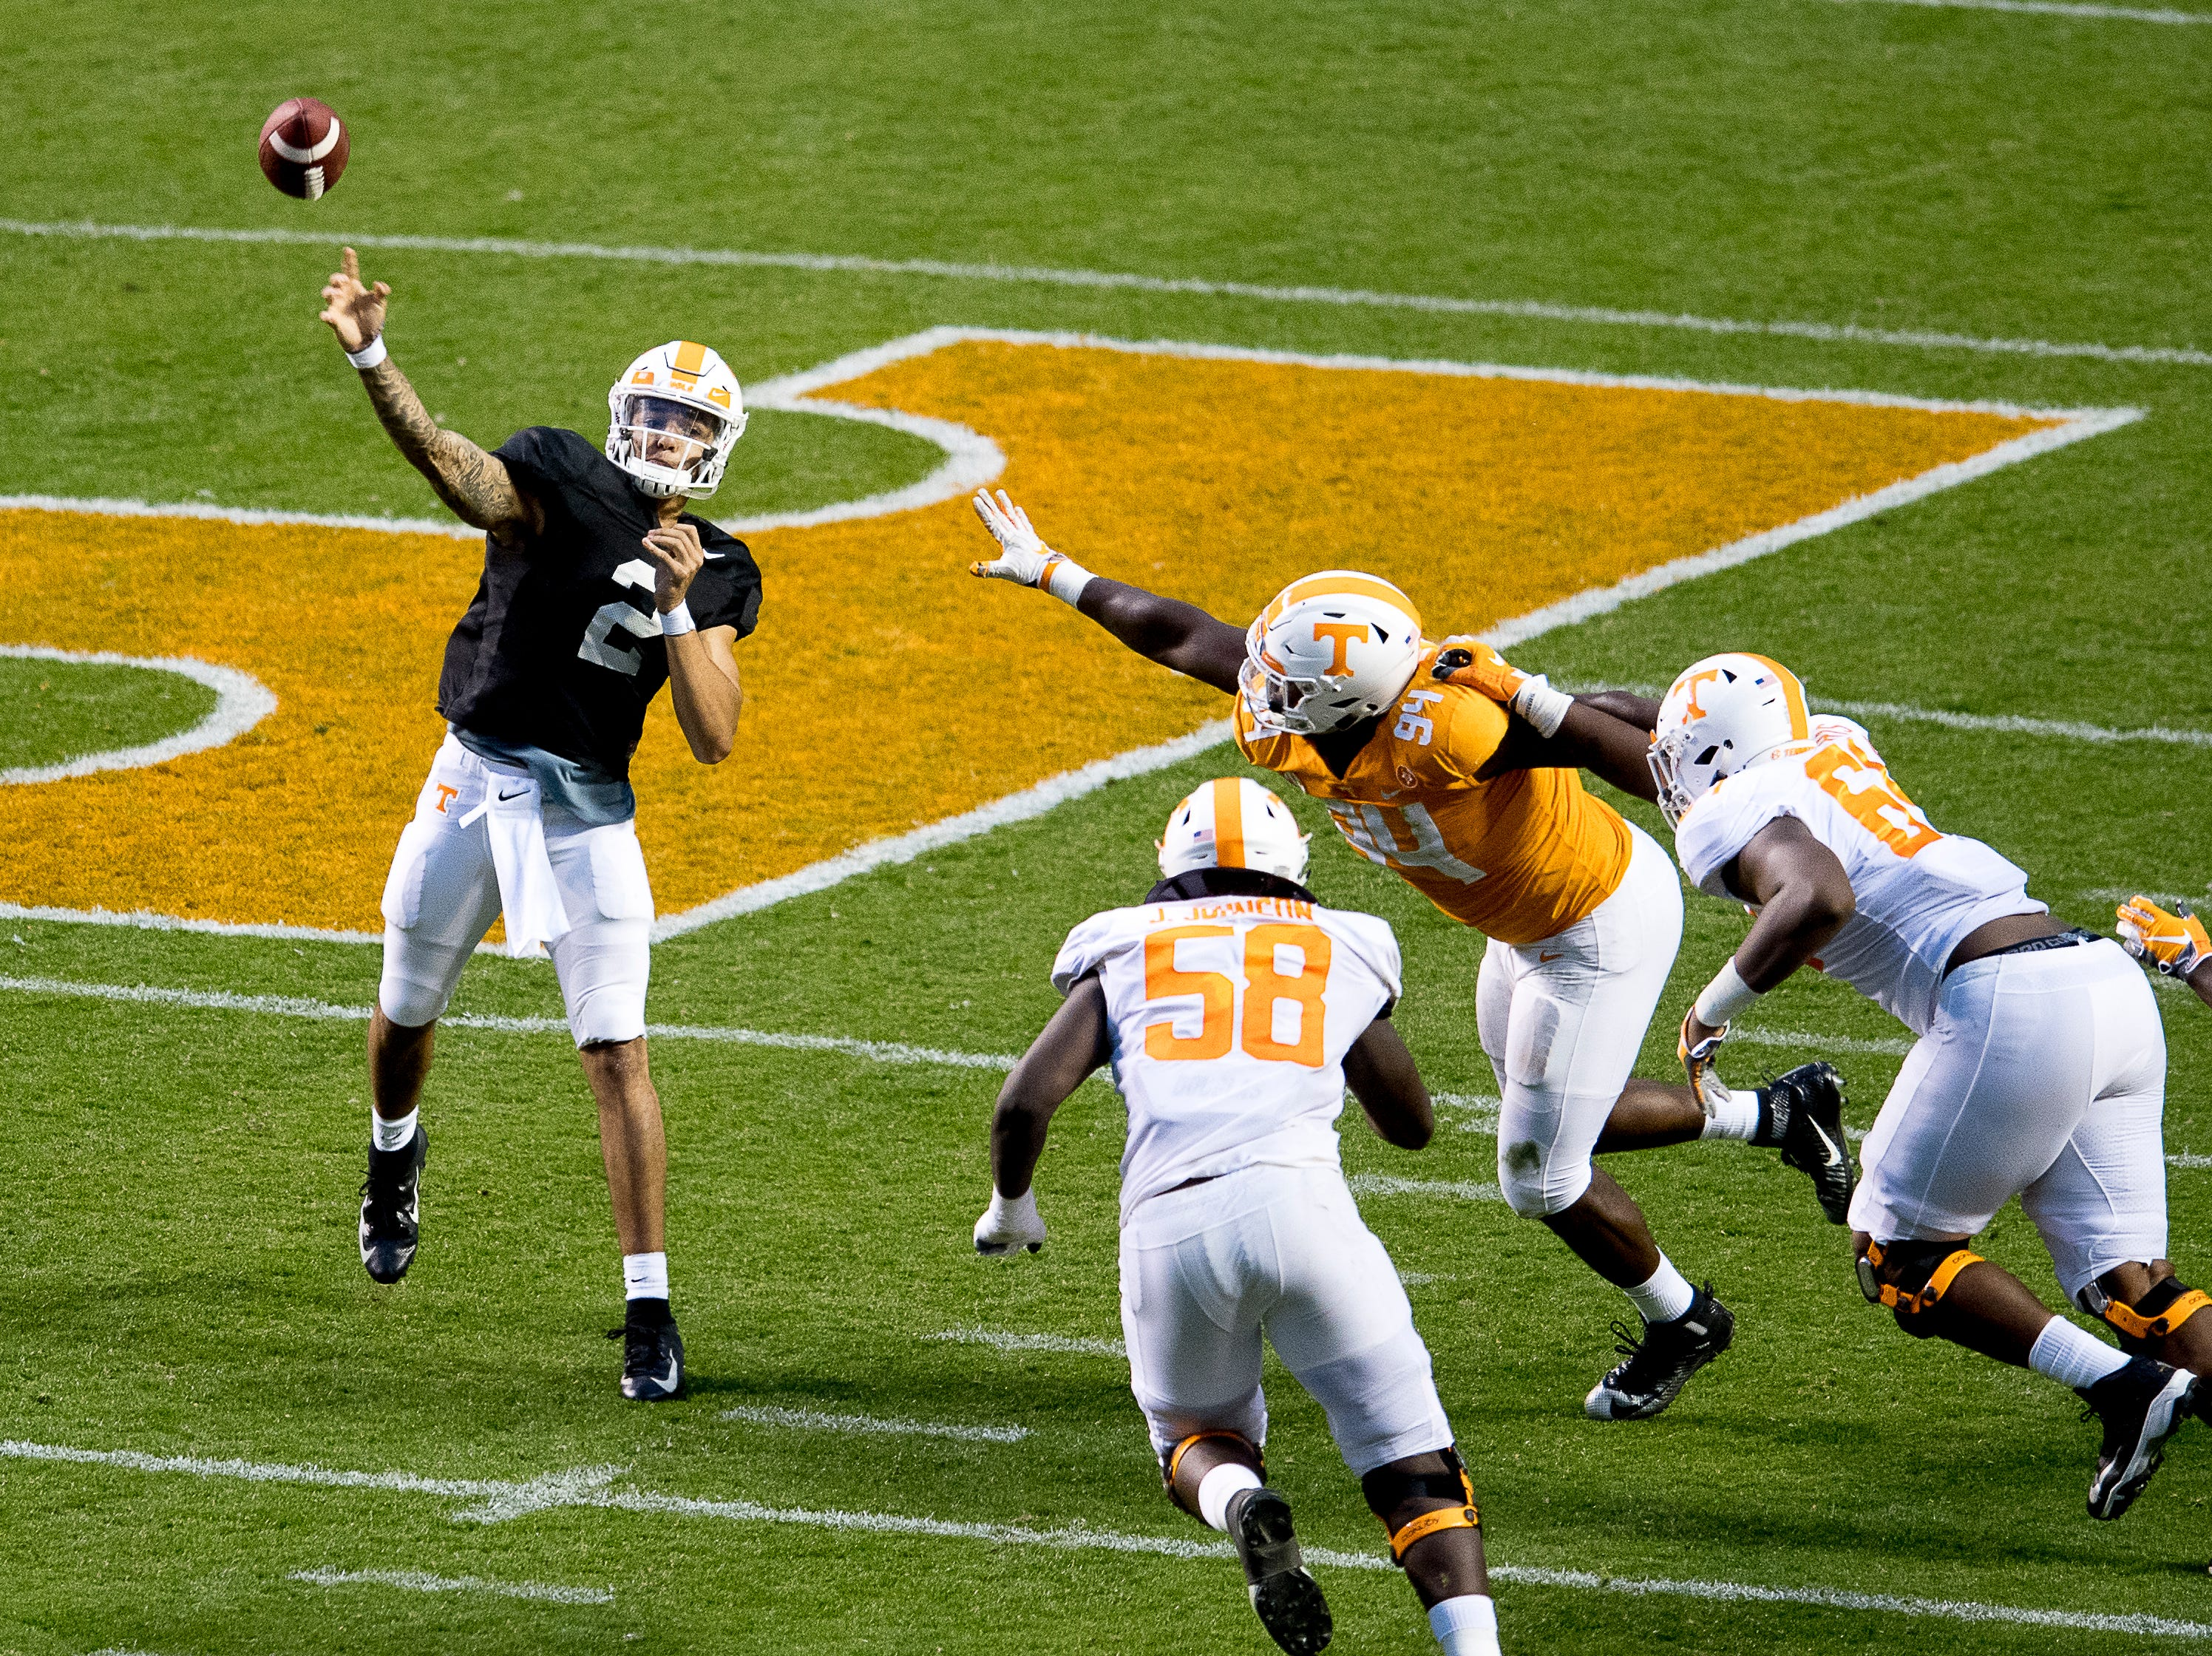 Tennessee quarterback Jarrett Guarantano (2) throws a pass during the Tennessee Spring Game at Neyland Stadium in Knoxville, Tennessee on Saturday, April 13, 2019.